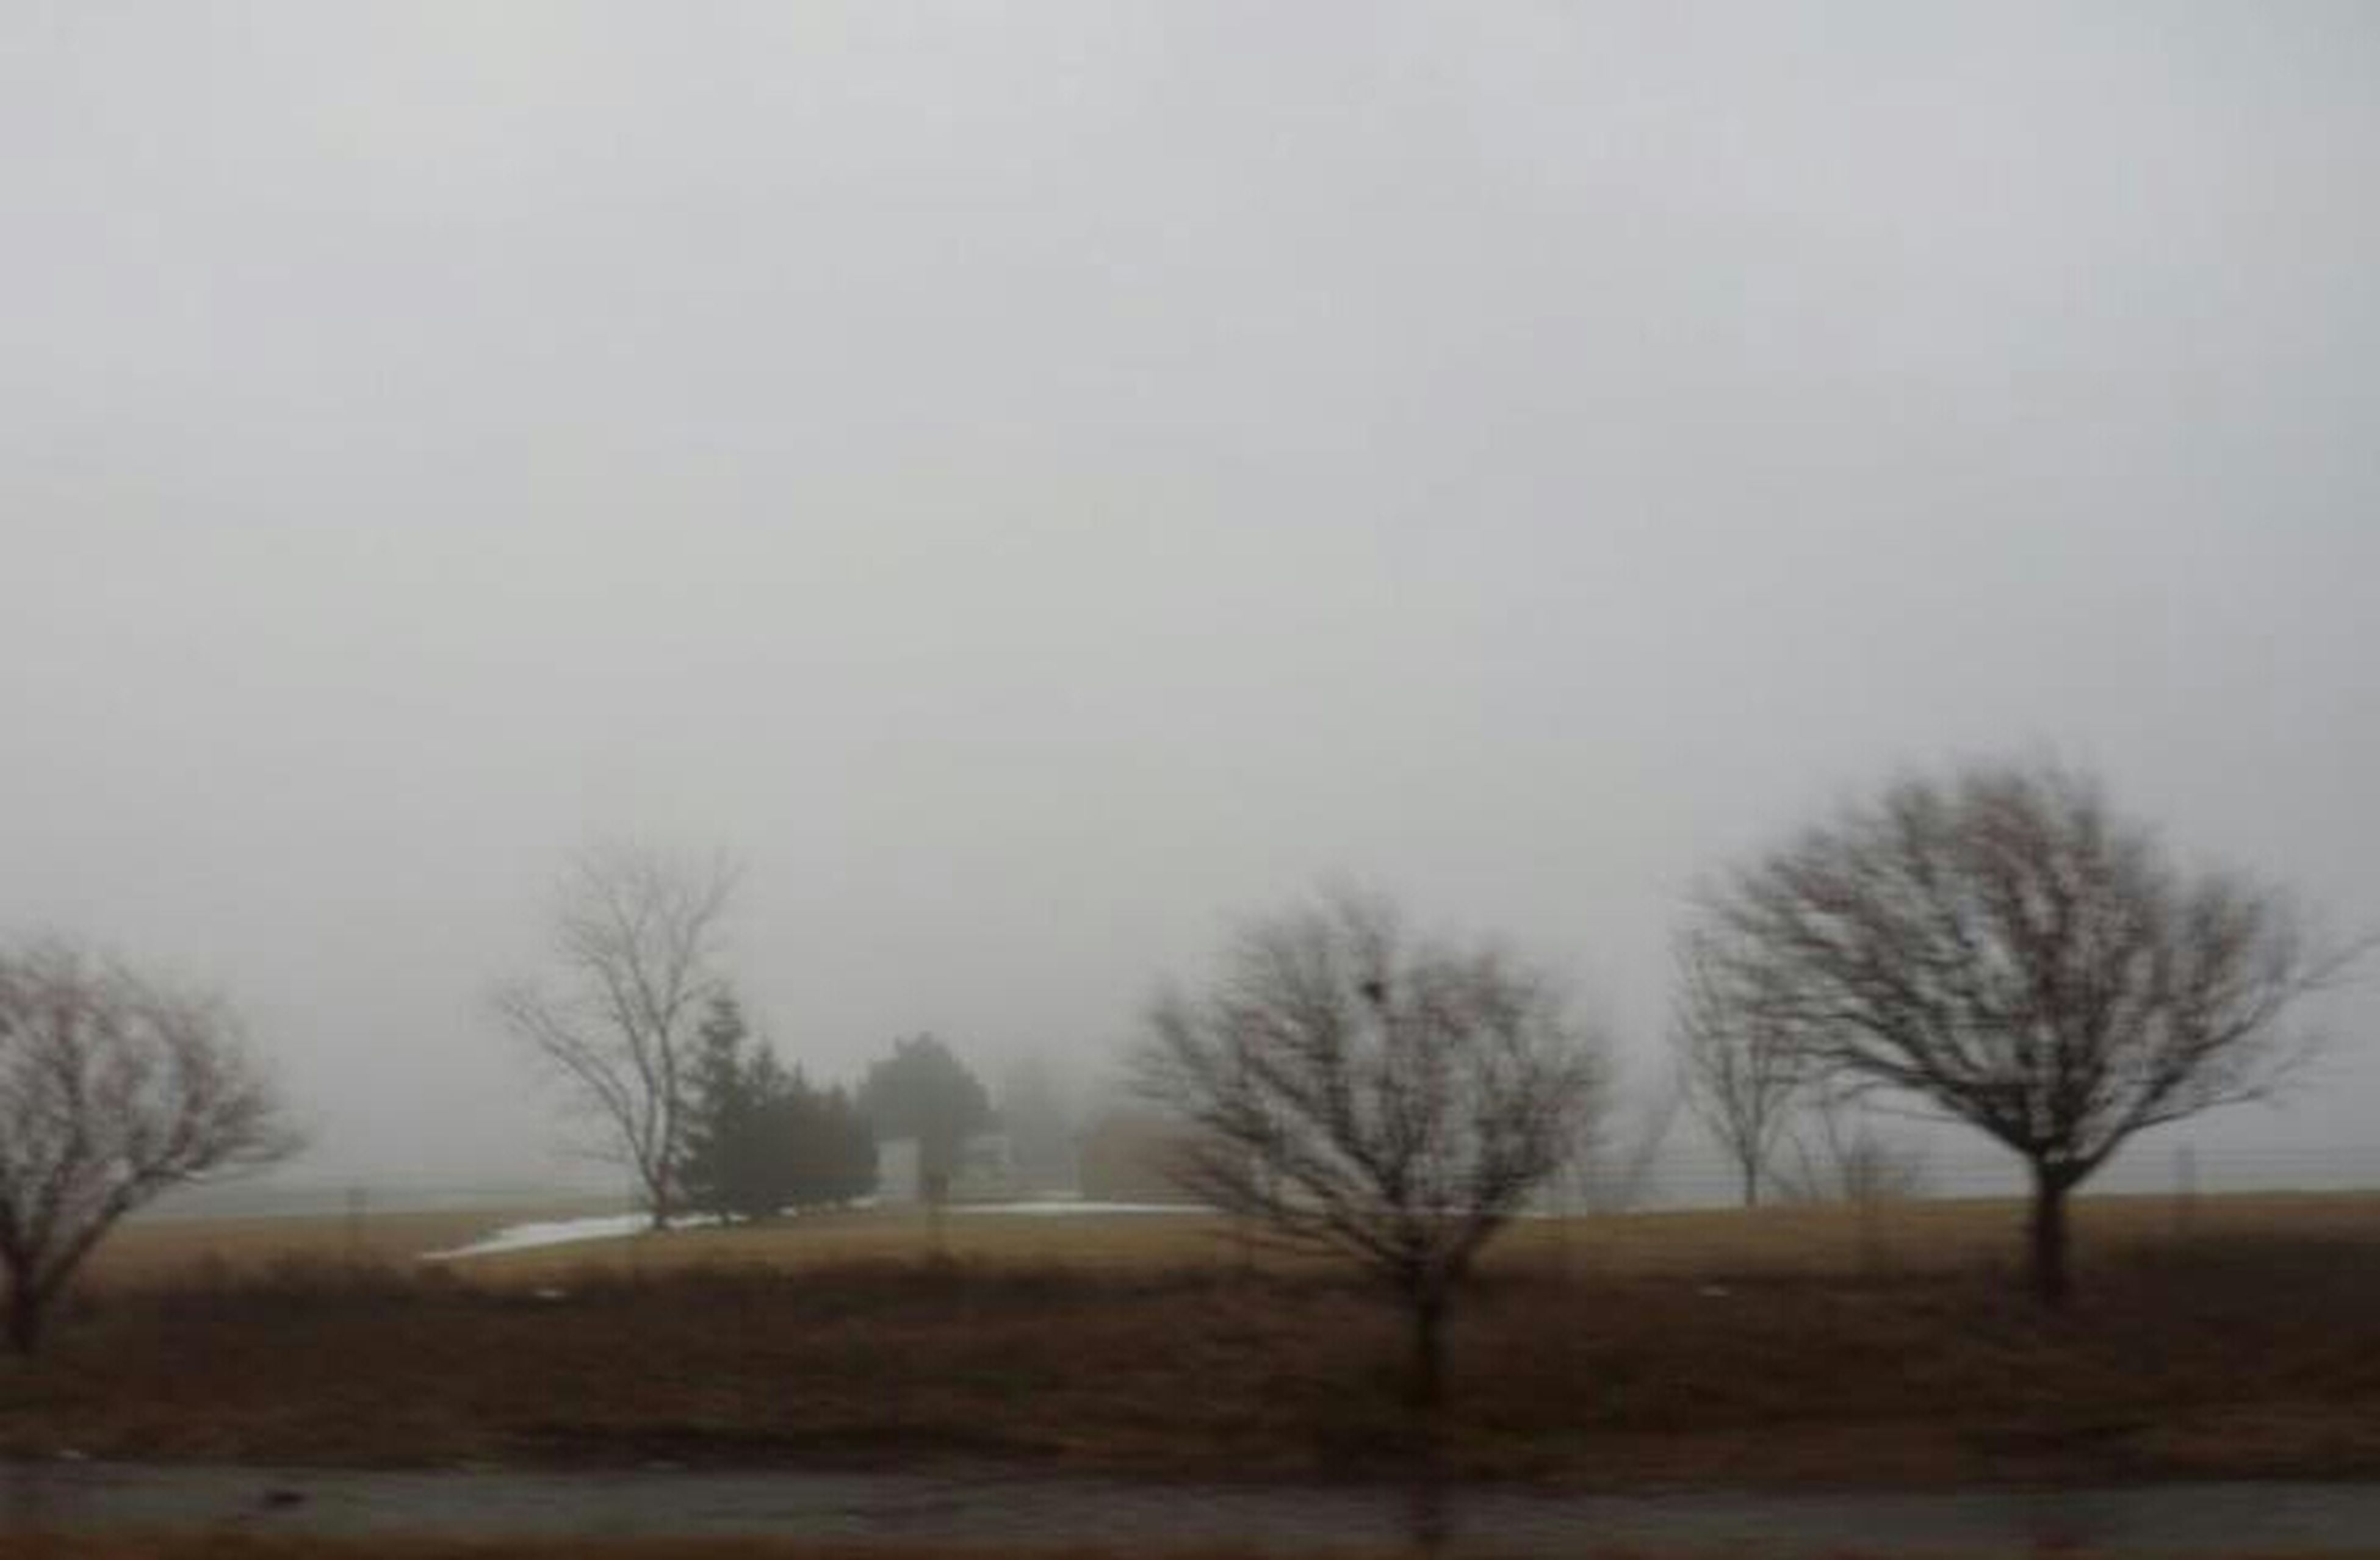 bare tree, tree, fog, foggy, landscape, tranquility, field, tranquil scene, copy space, weather, nature, scenics, beauty in nature, sky, branch, outdoors, dusk, non-urban scene, no people